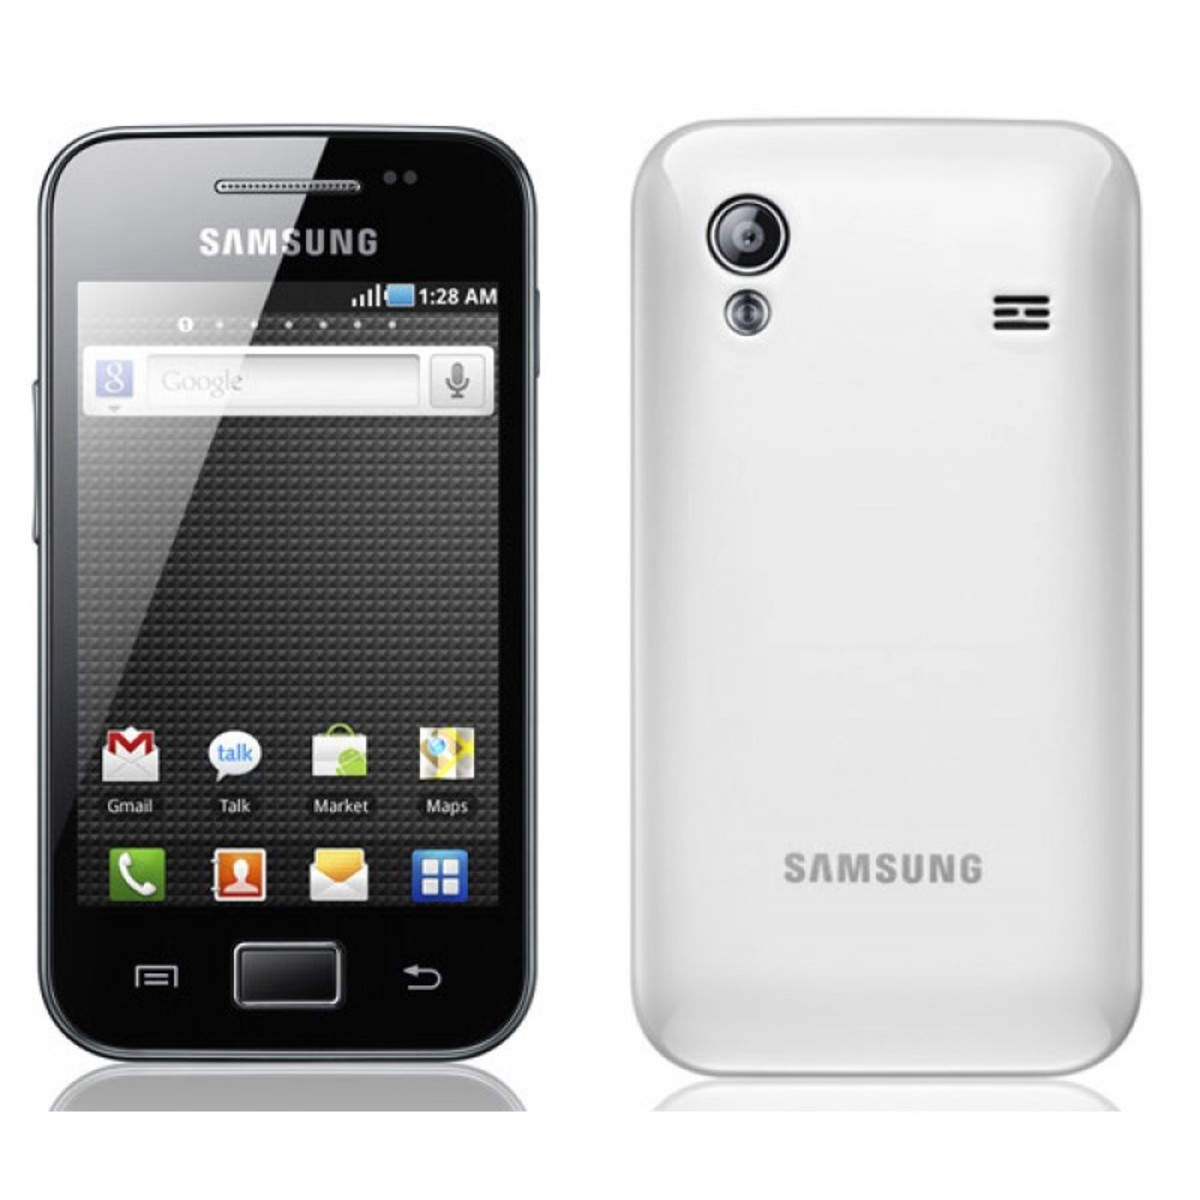 Samsung Galaxy Ace s5830 Upgrade to Jelly Bean 4.2.2